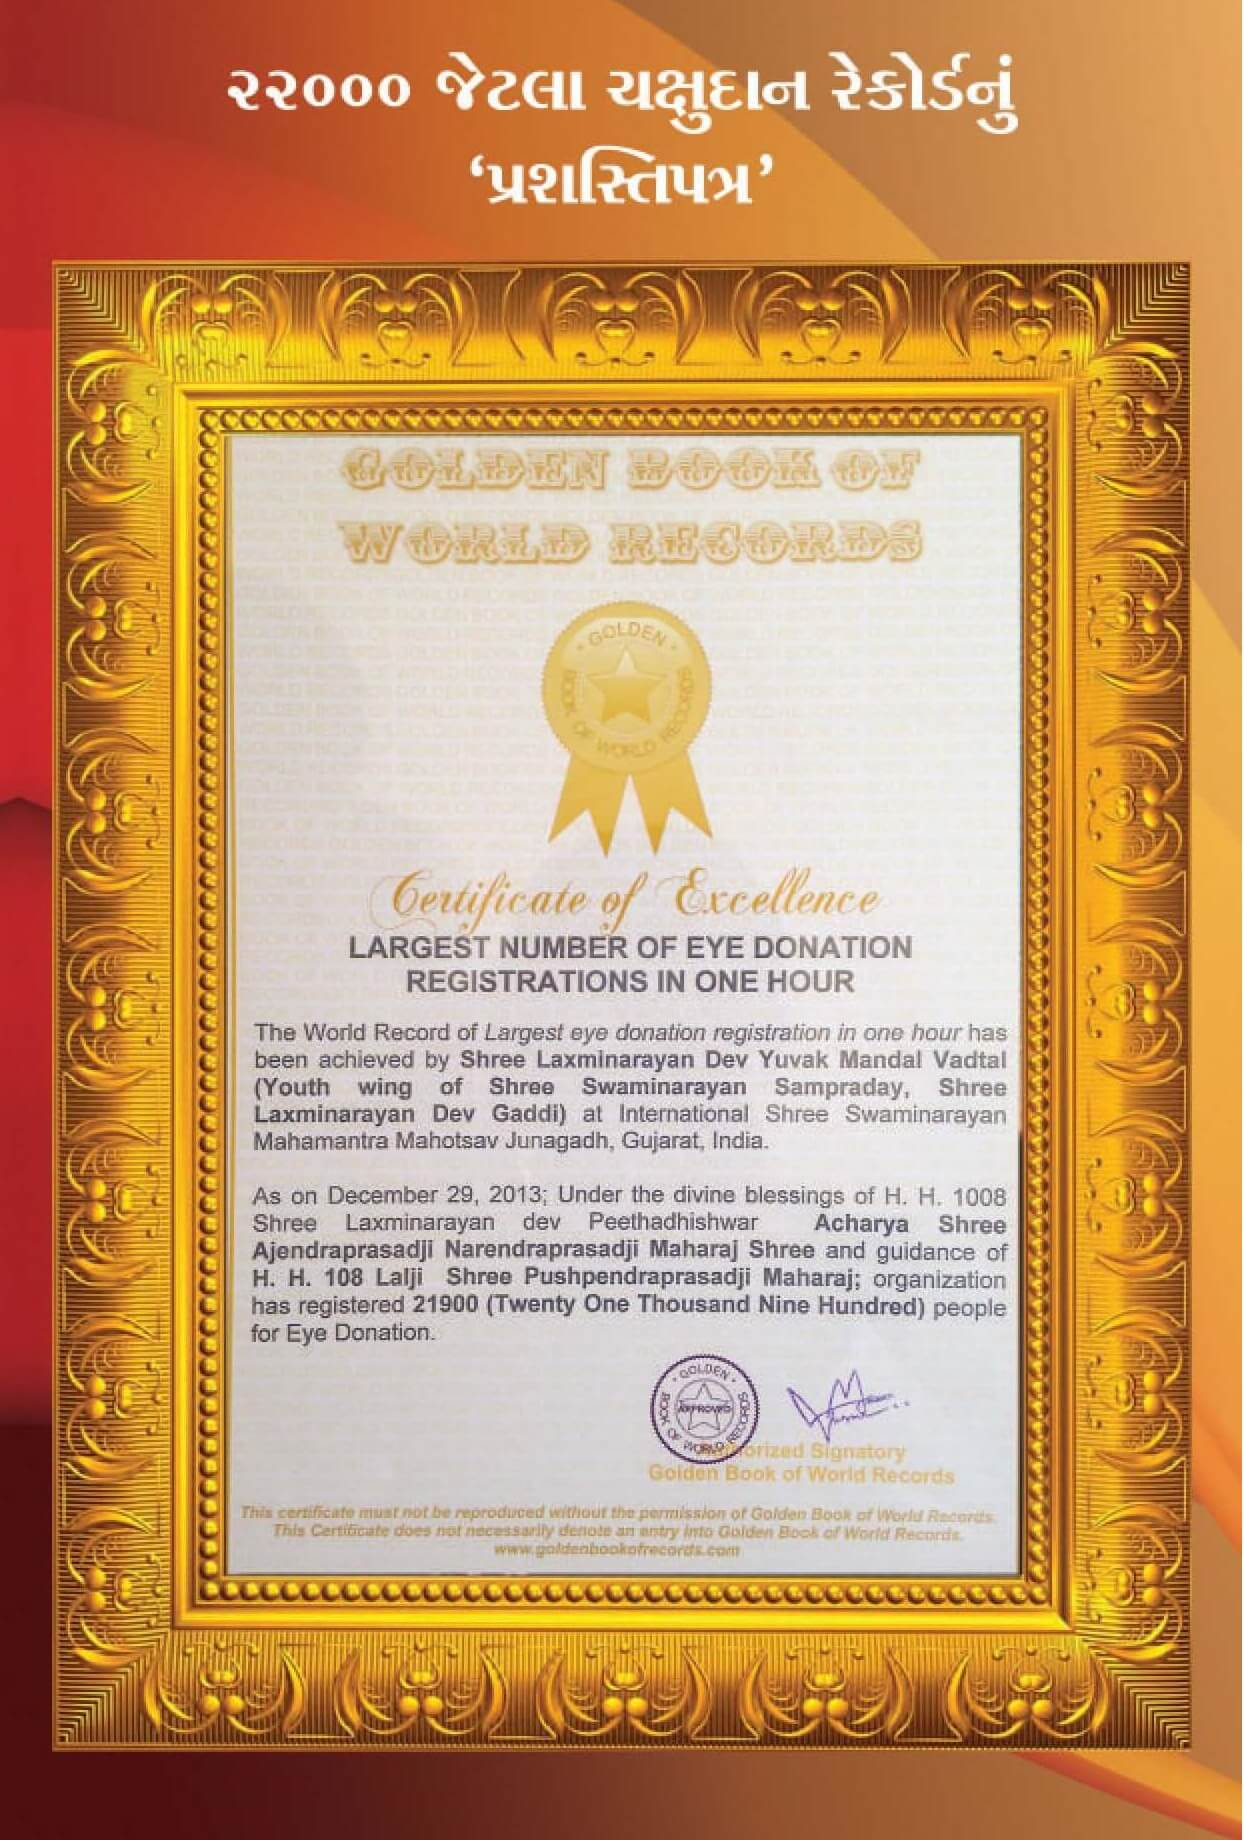 Golden Book of Records 22000 Largest Number of Eye Donation Registrations in One Hour